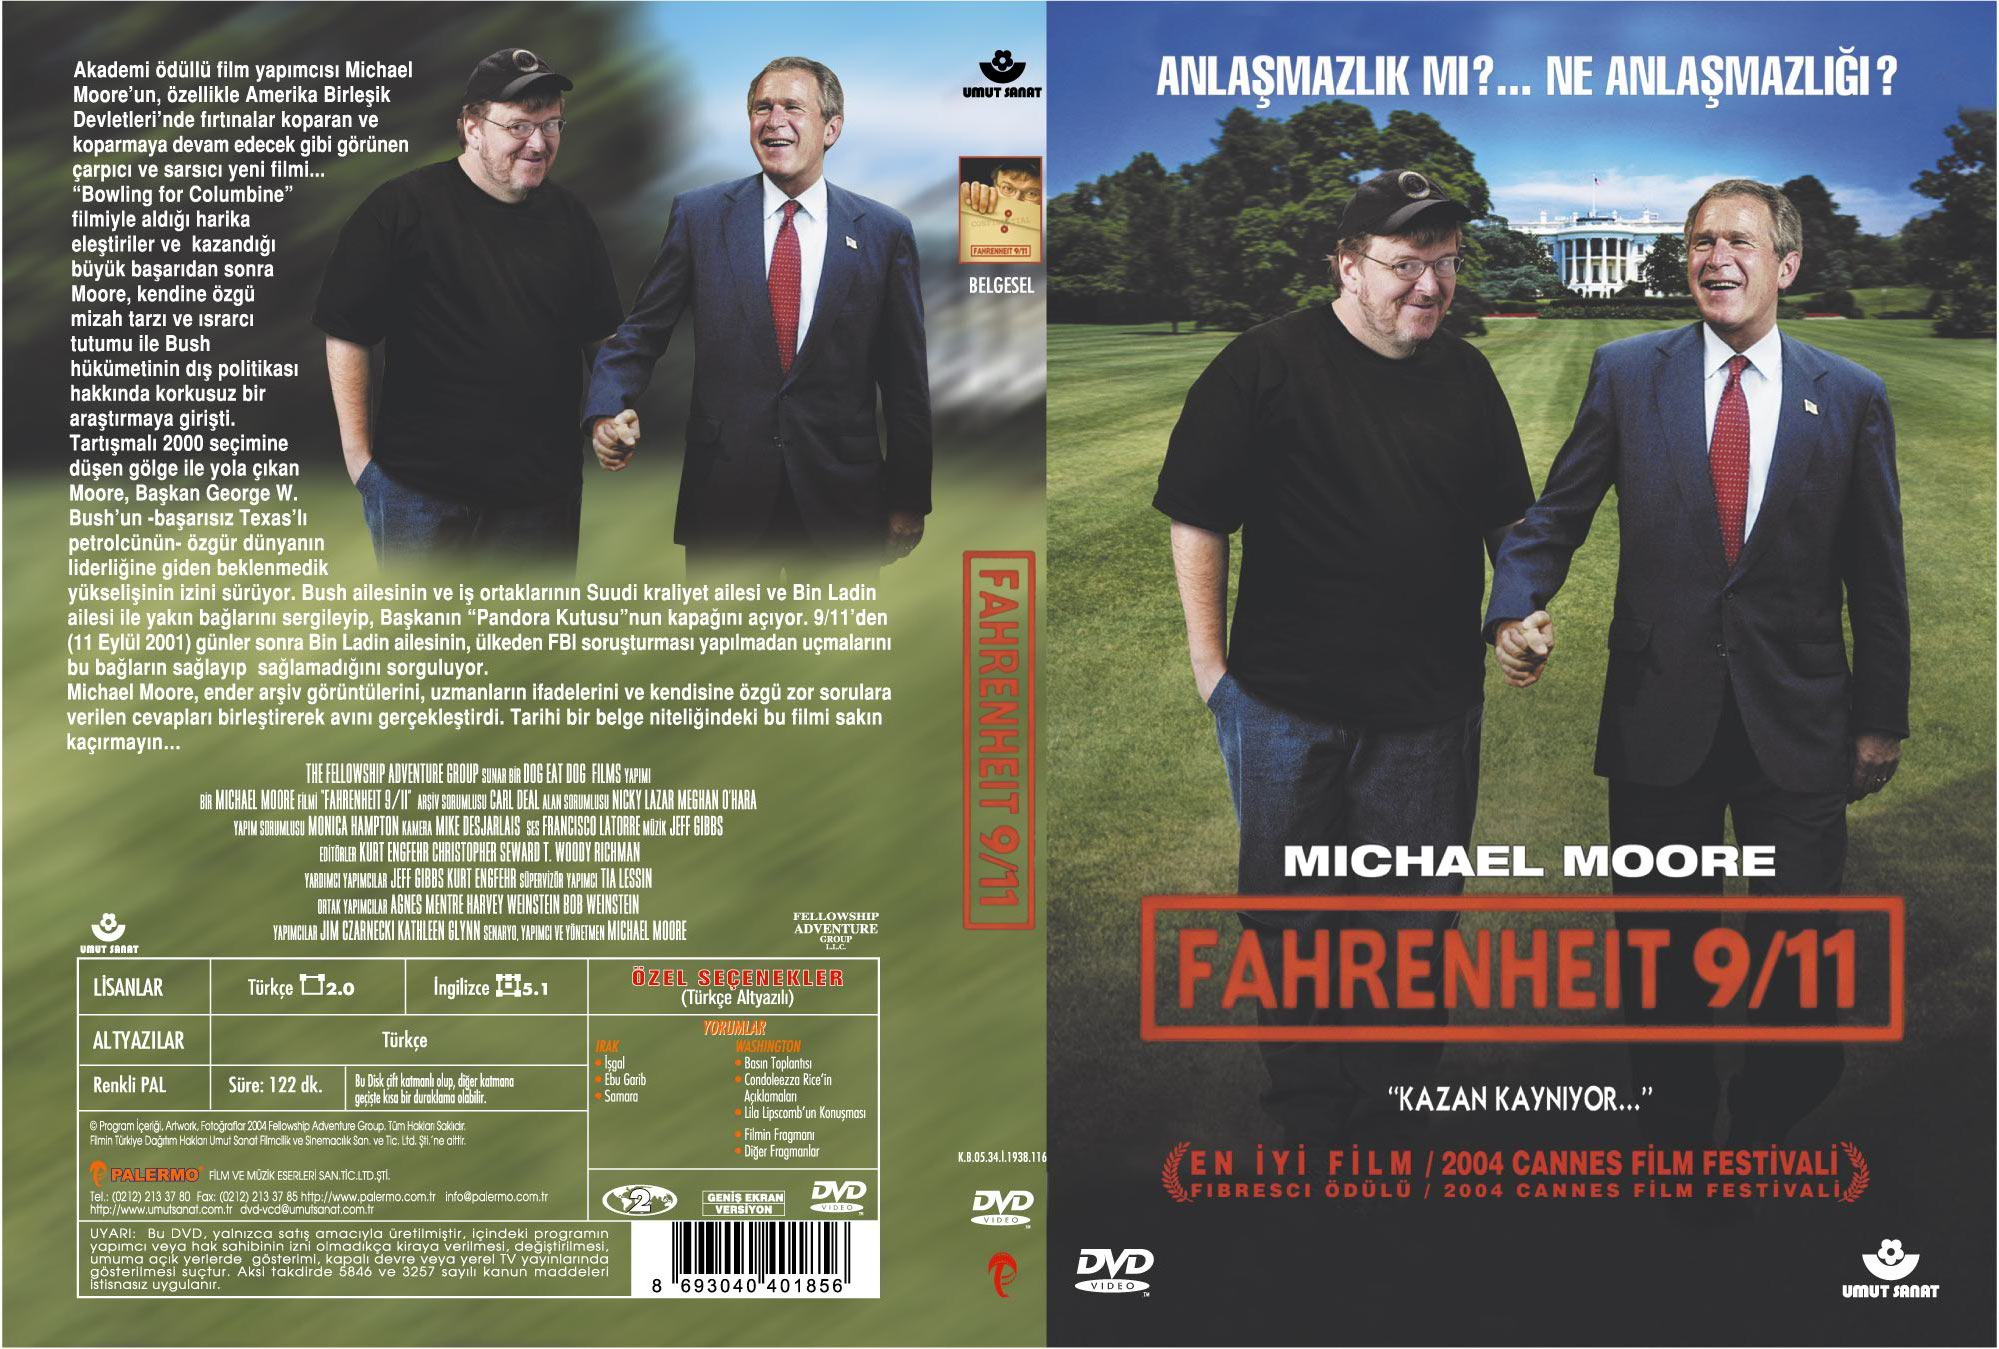 Songs And Artists That Inspired Fahrenheit 911